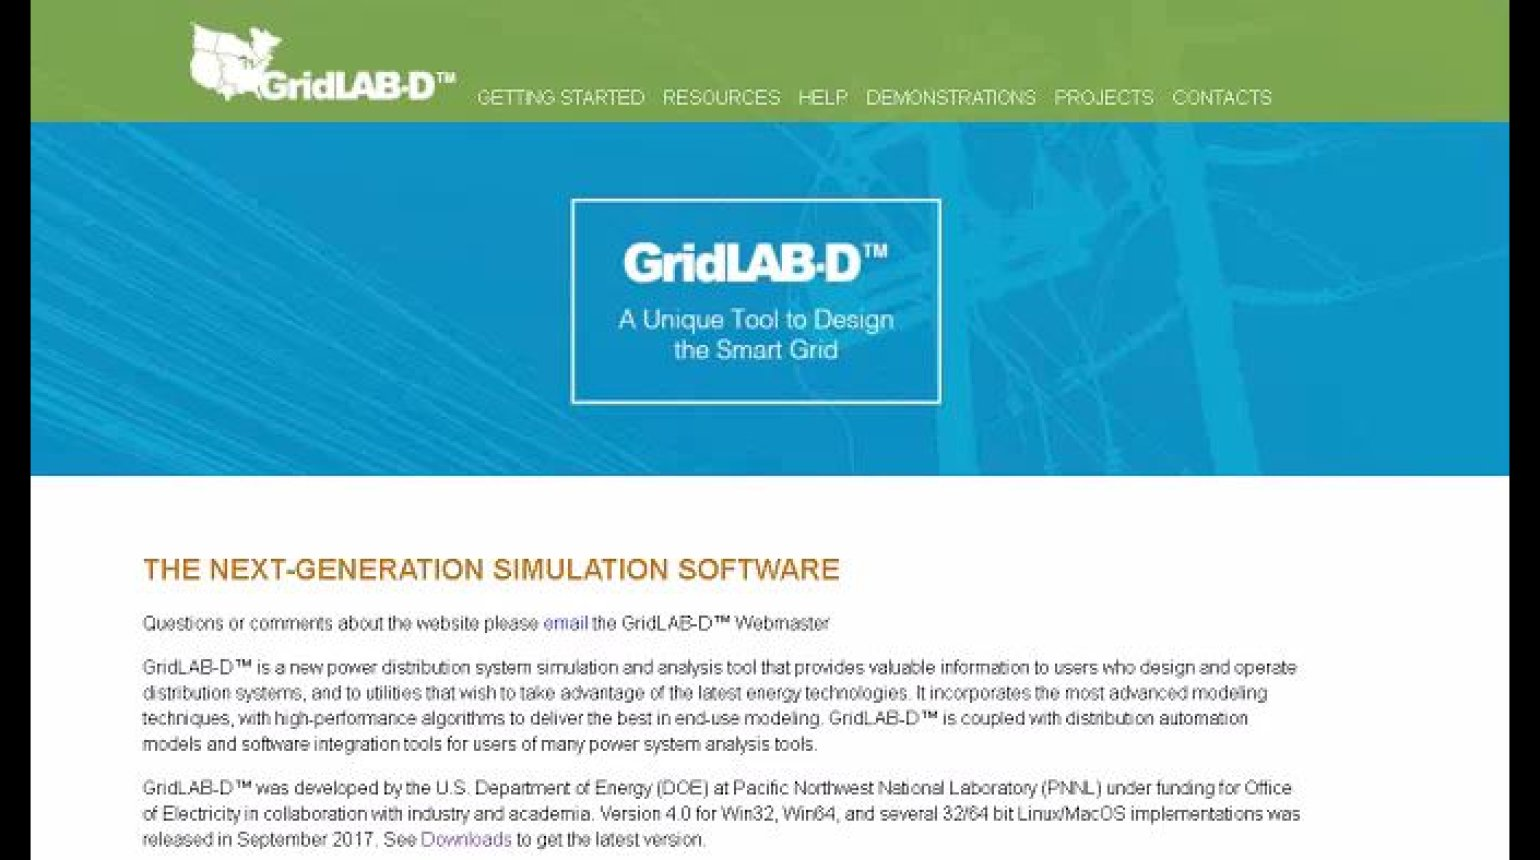 GridLAB-D Applications